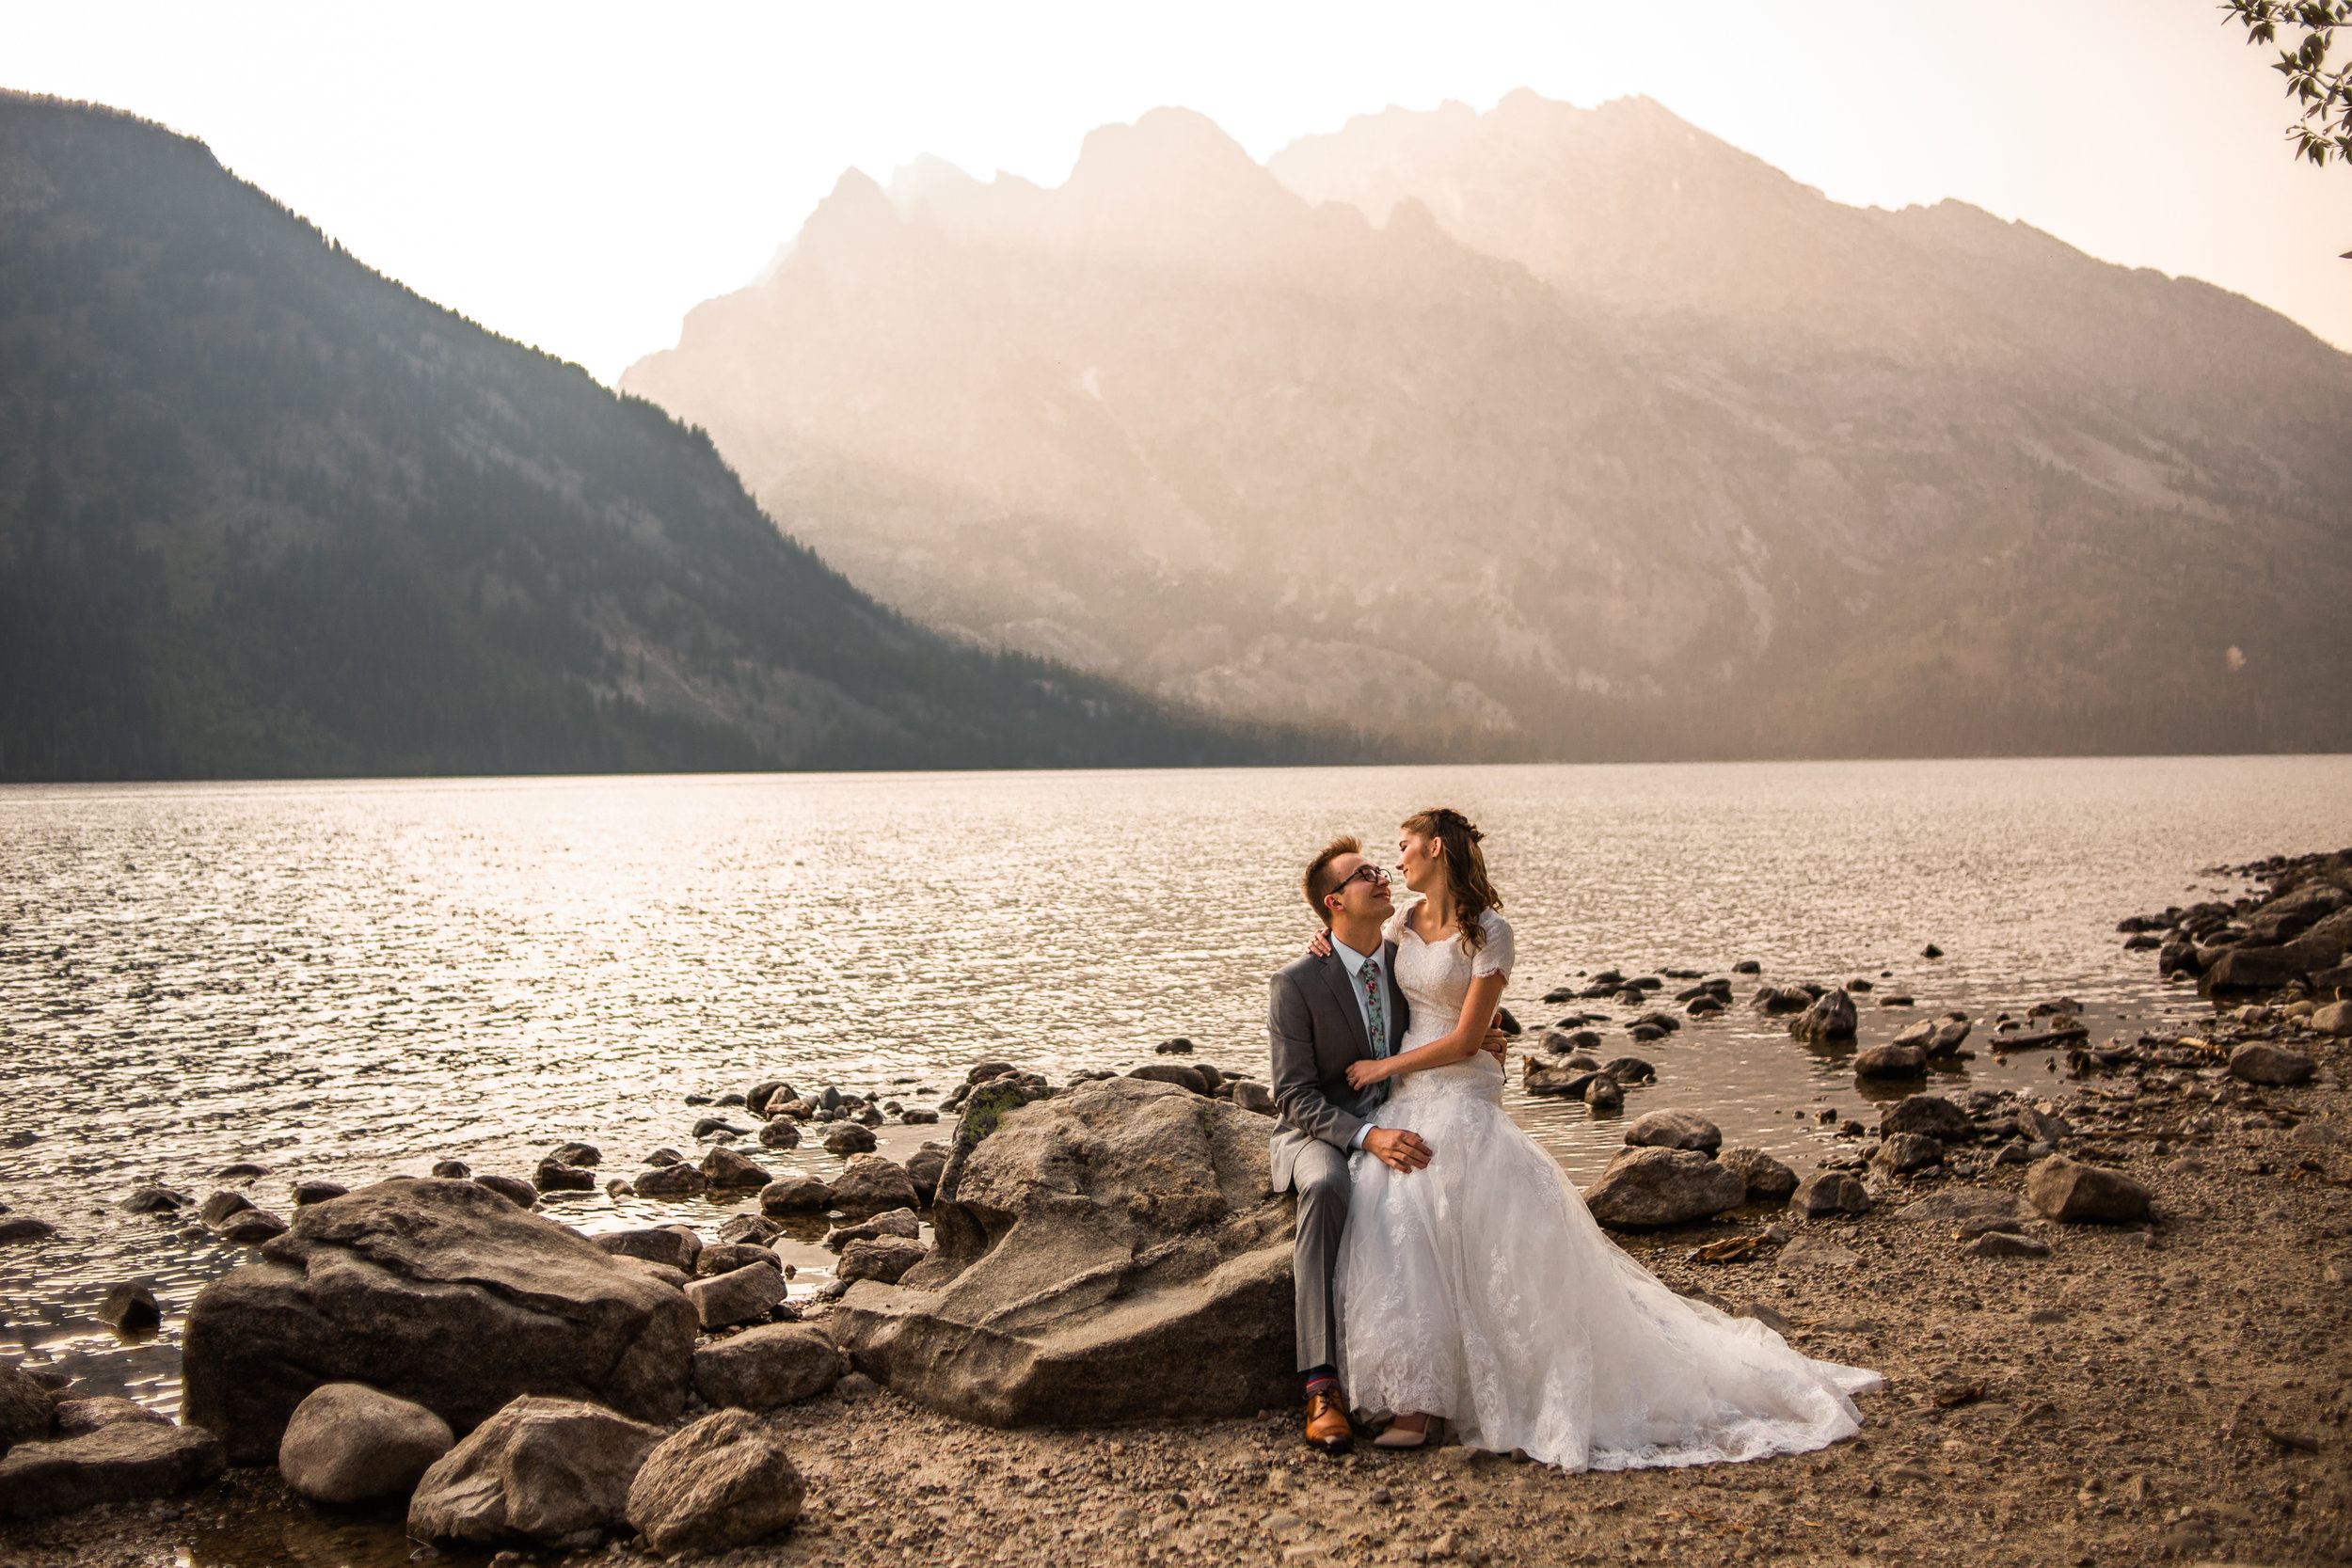 Grand-Teton-National-Park-Bridal-Session35.jpg